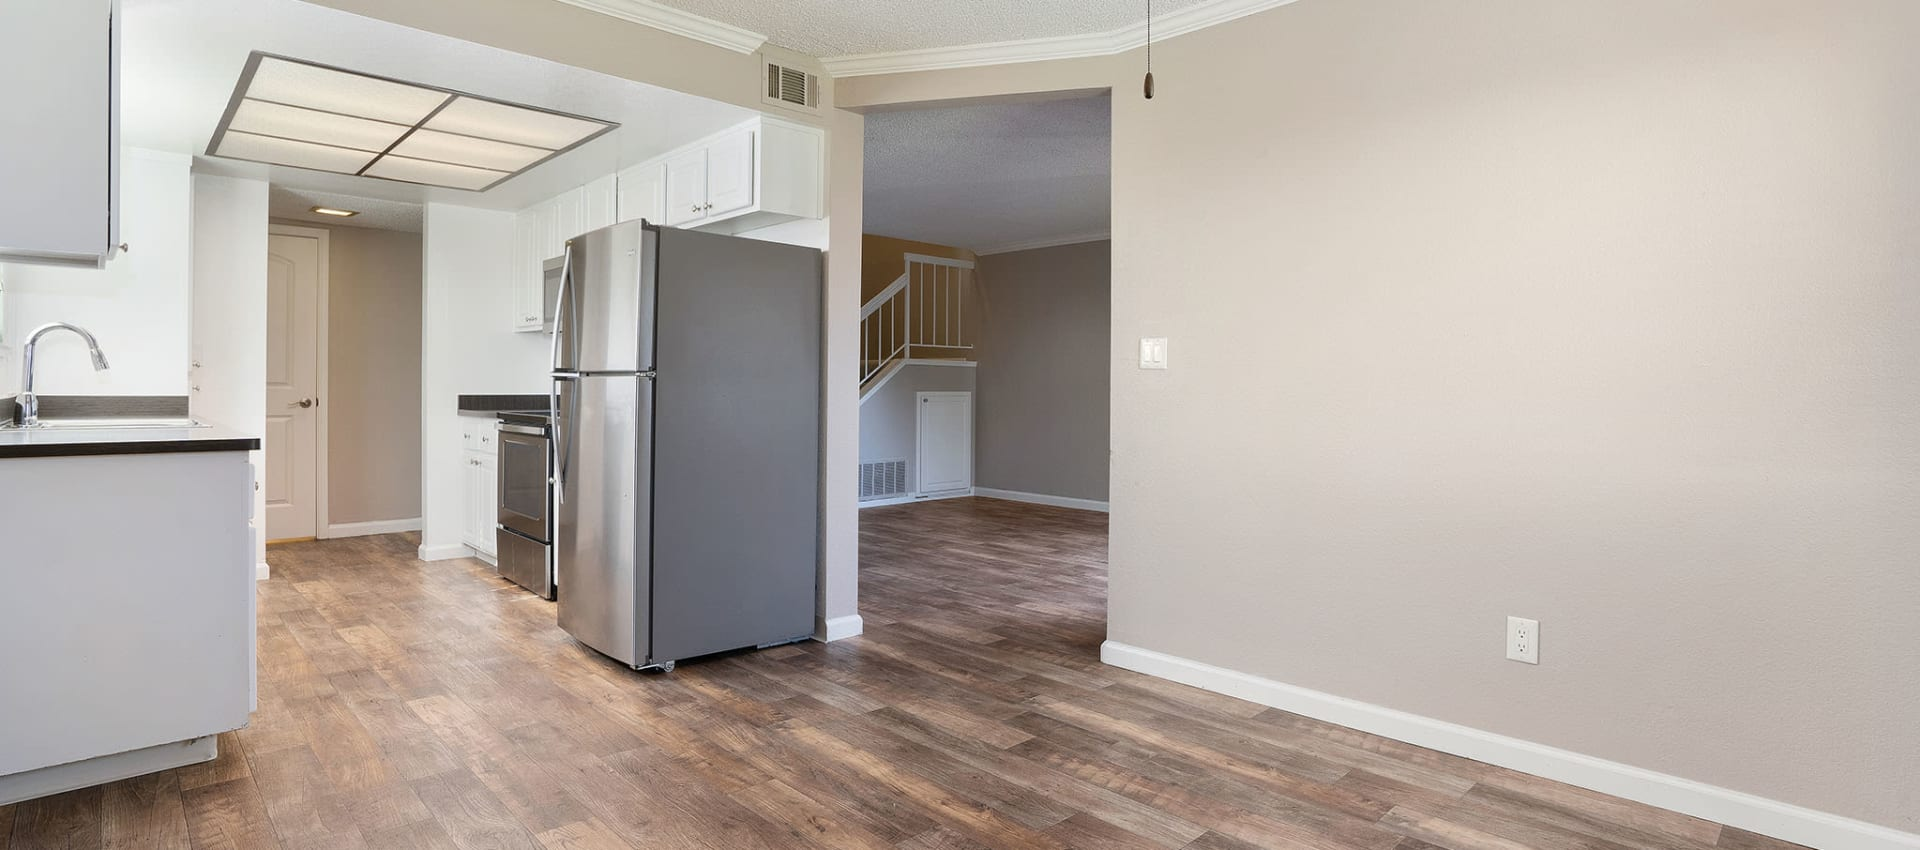 Wood Flooring at Ridgecrest Apartment Homes in Martinez, California